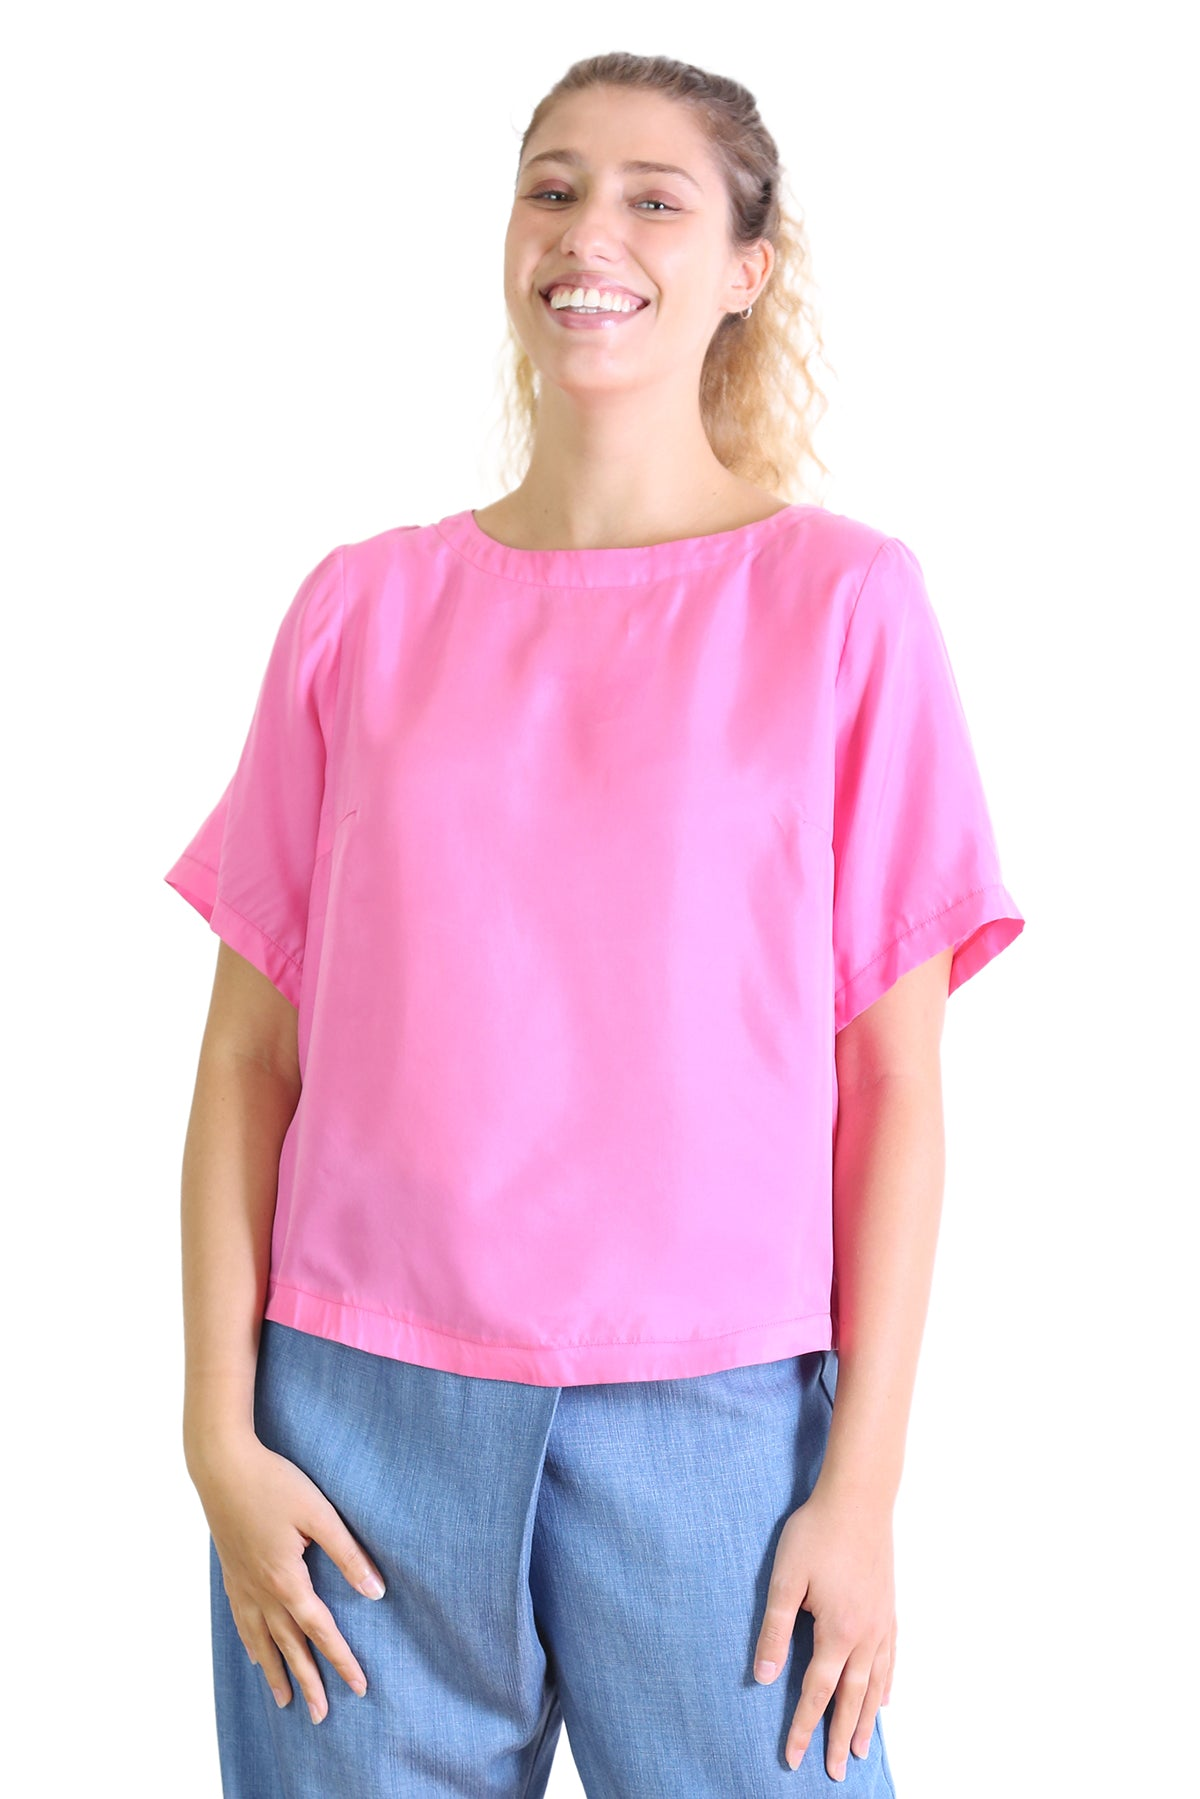 Kitty Top - Neon Pink